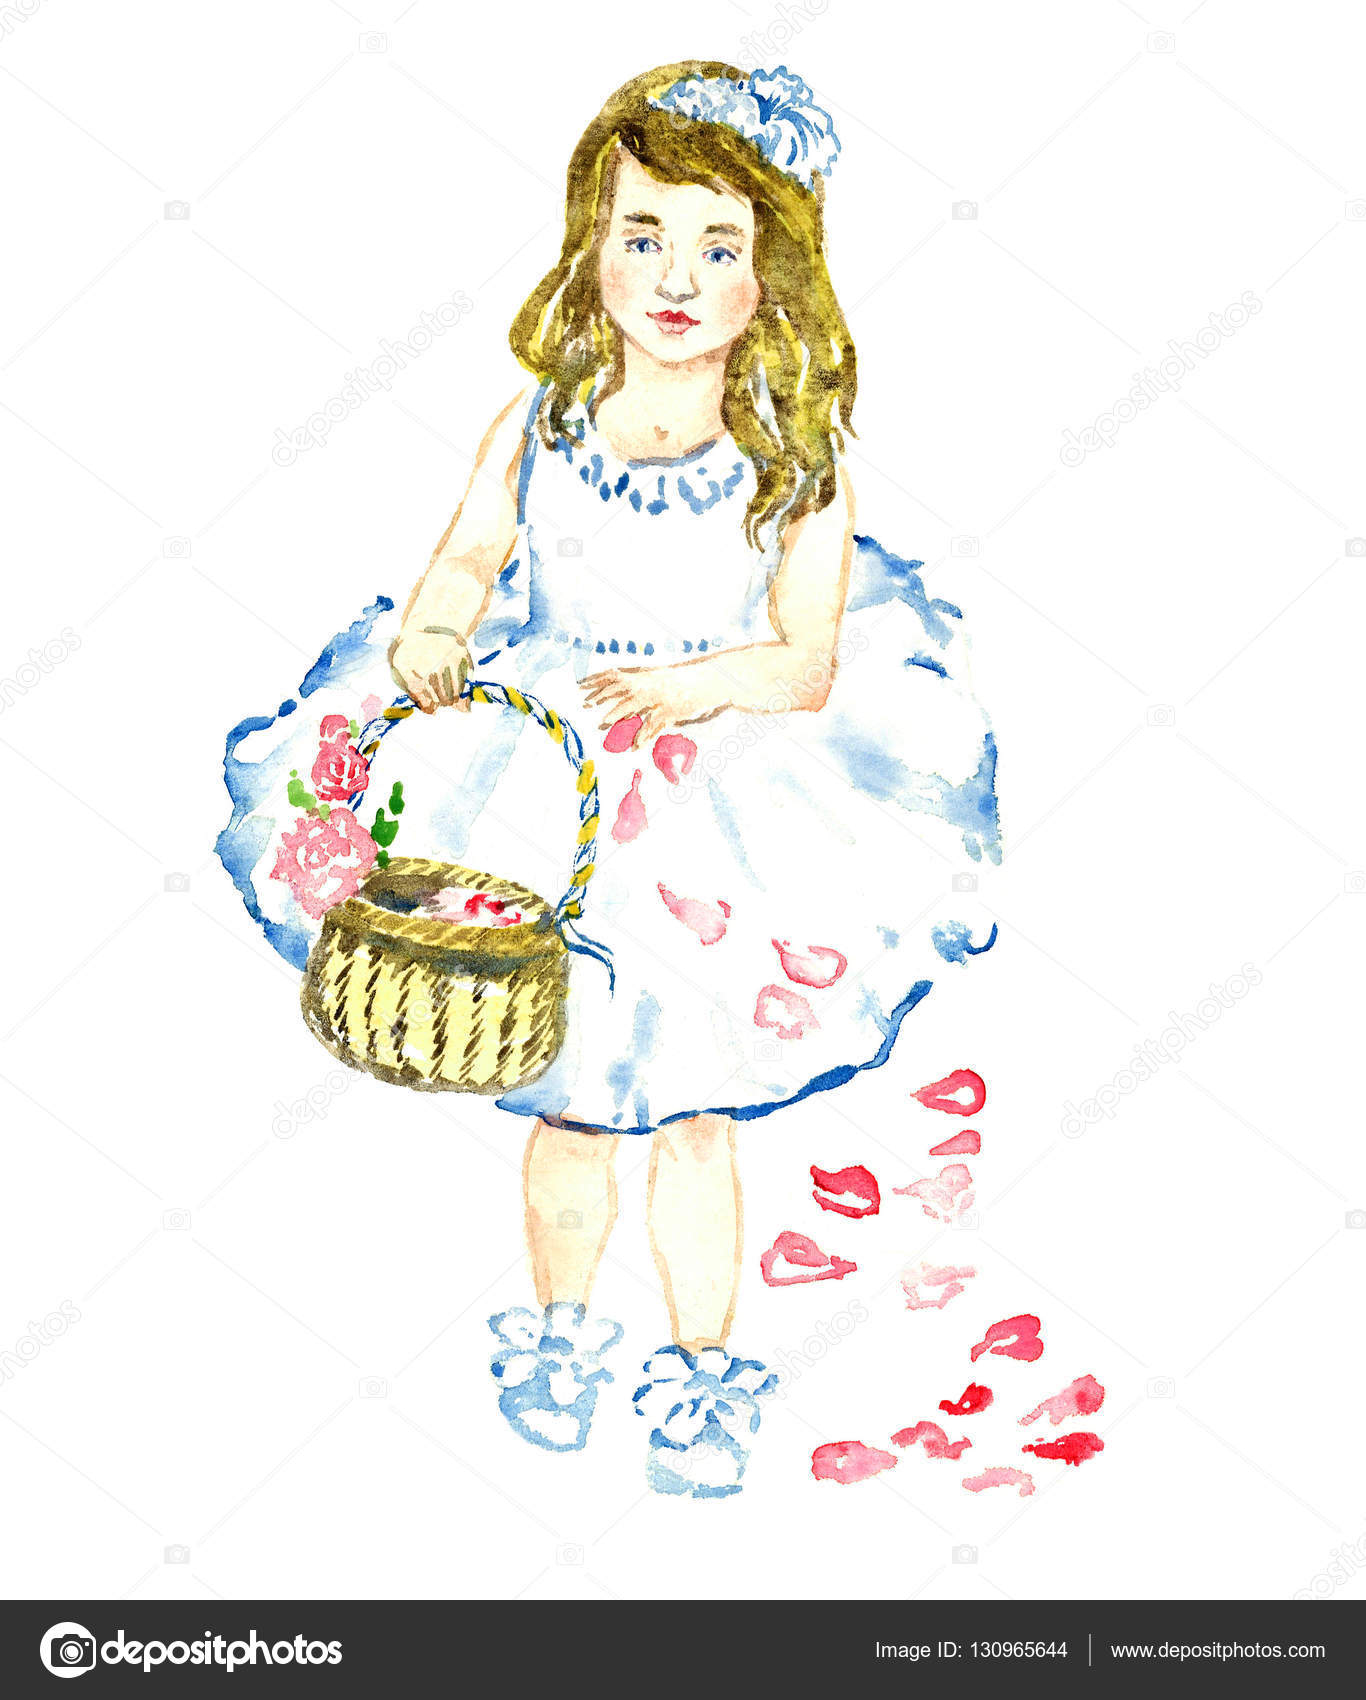 Portrait Of Little Girl In White Dress With Flowers In Blonde Hair